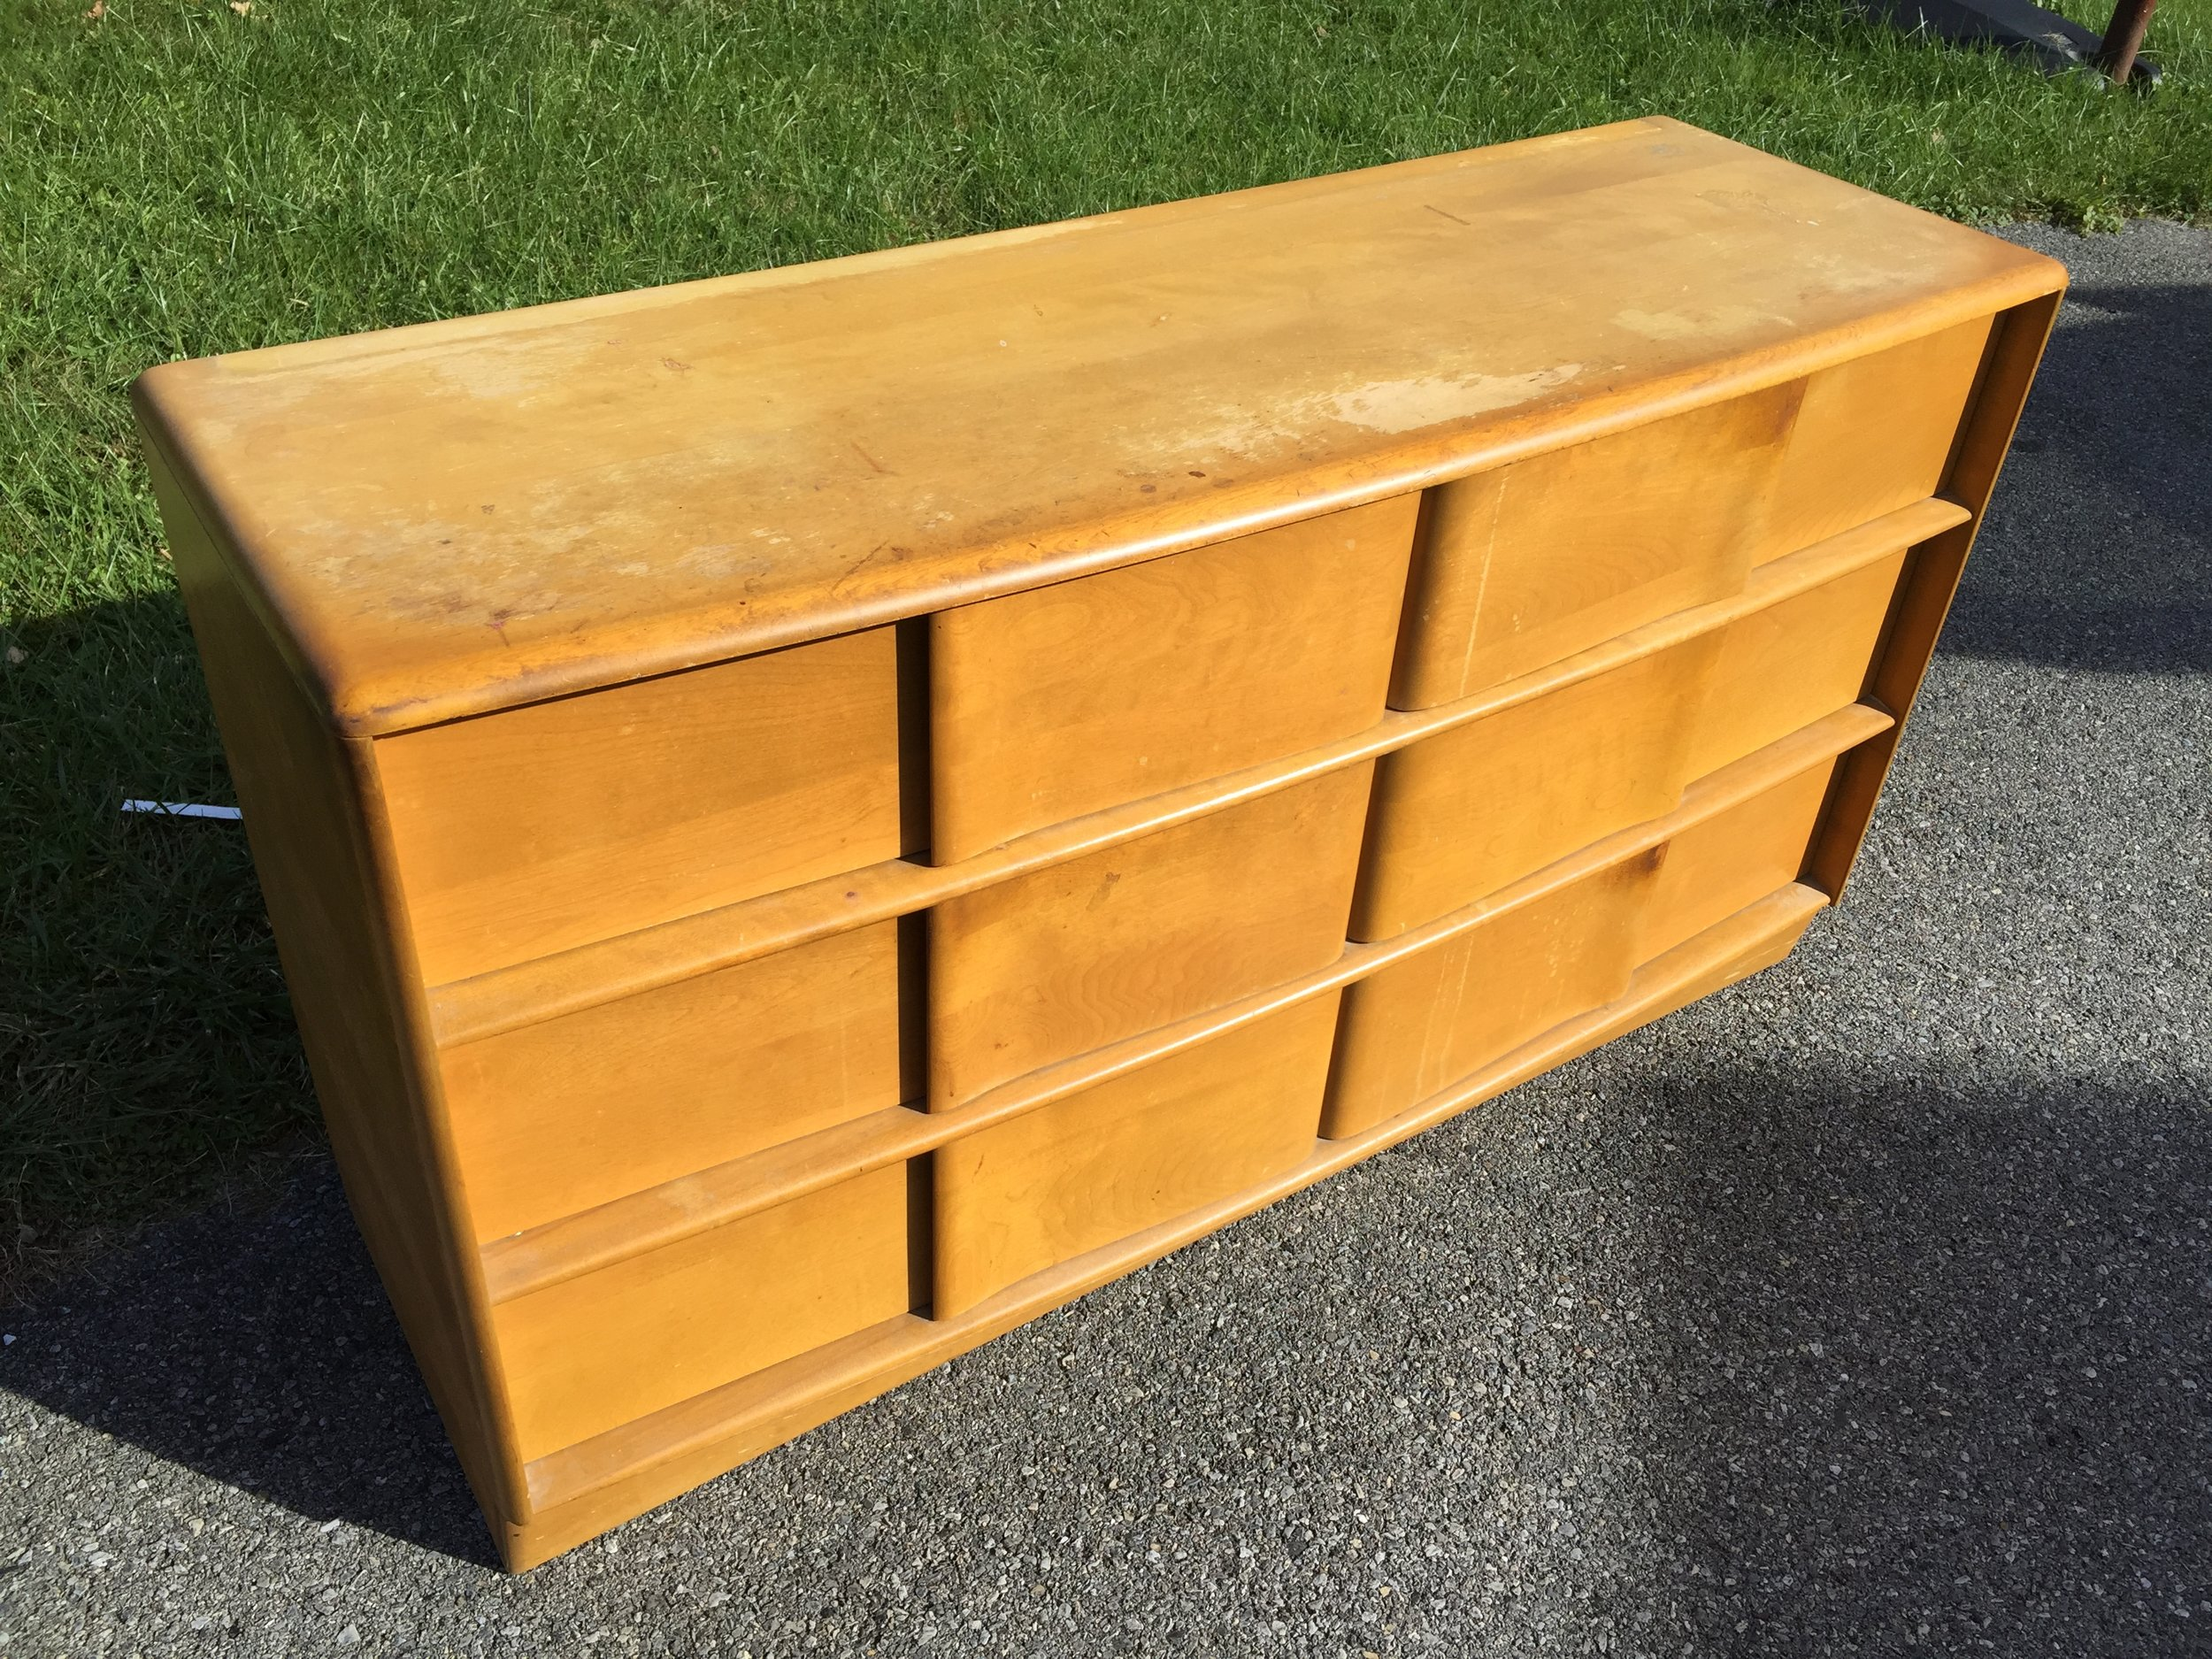 Heywood Wakefield Sculptura 6 drawer low chest with mirror (see below). Also in Wheat with finish issues. $300